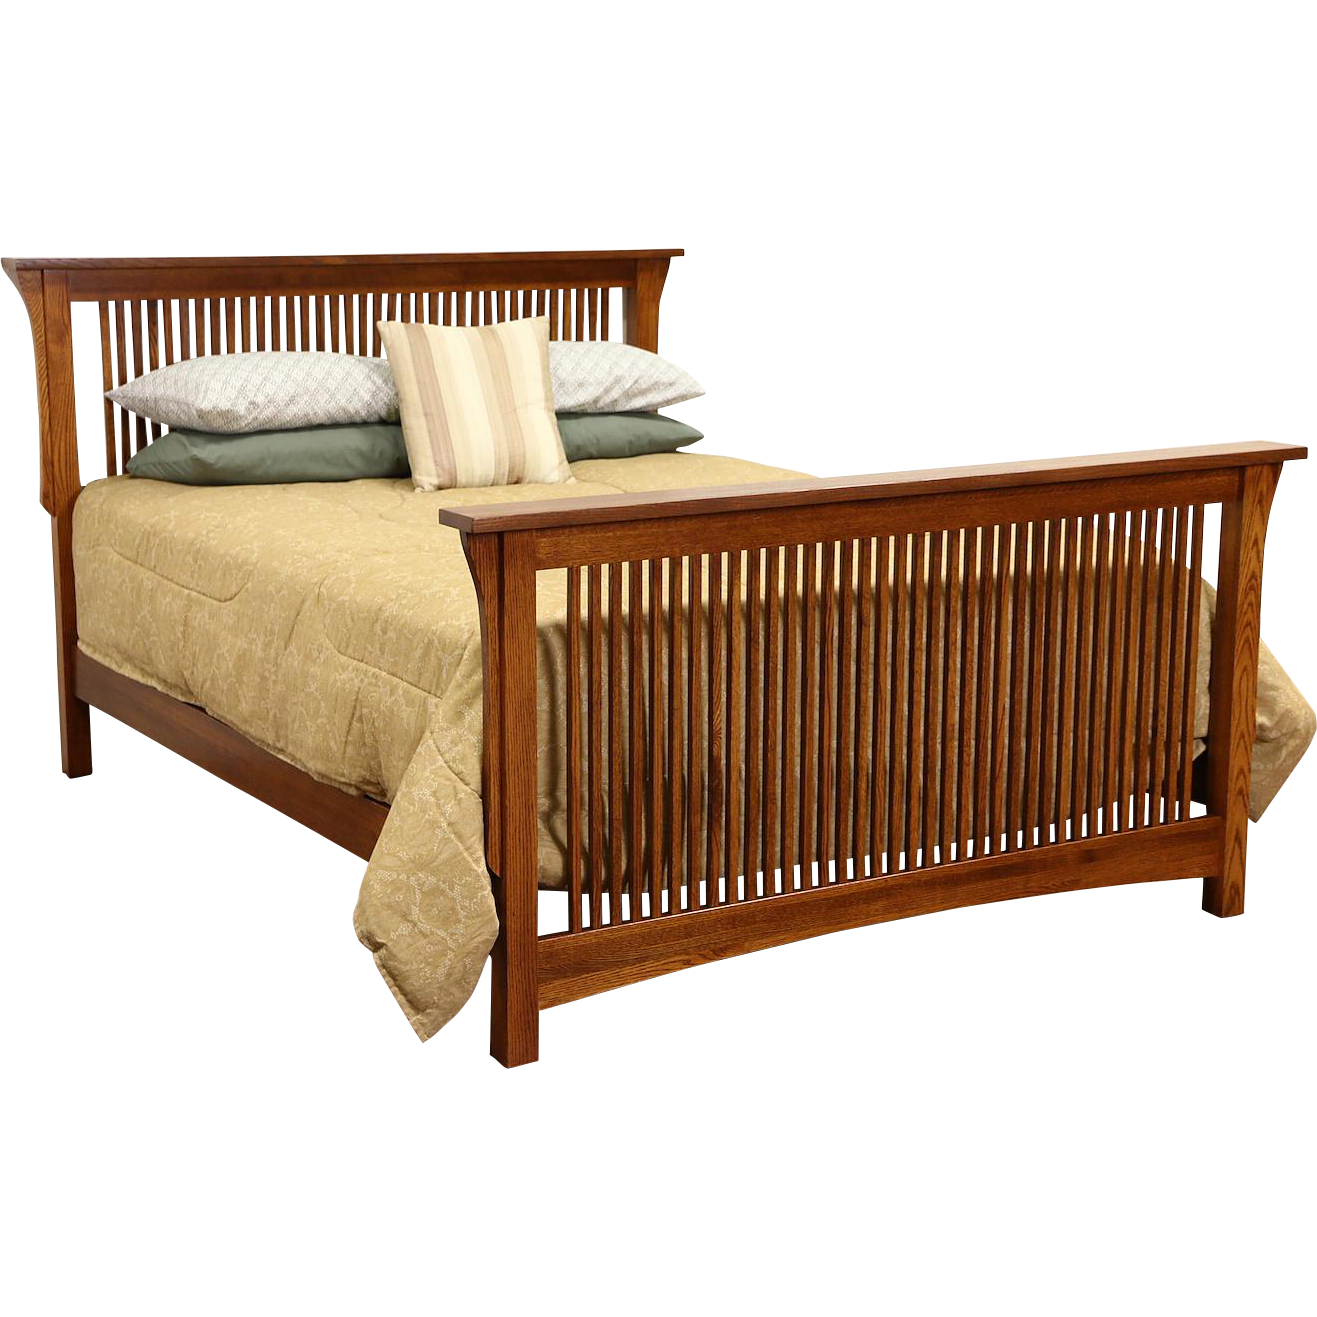 Arts & Crafts Mission Oak Vintage Craftsman Queen Size Bed